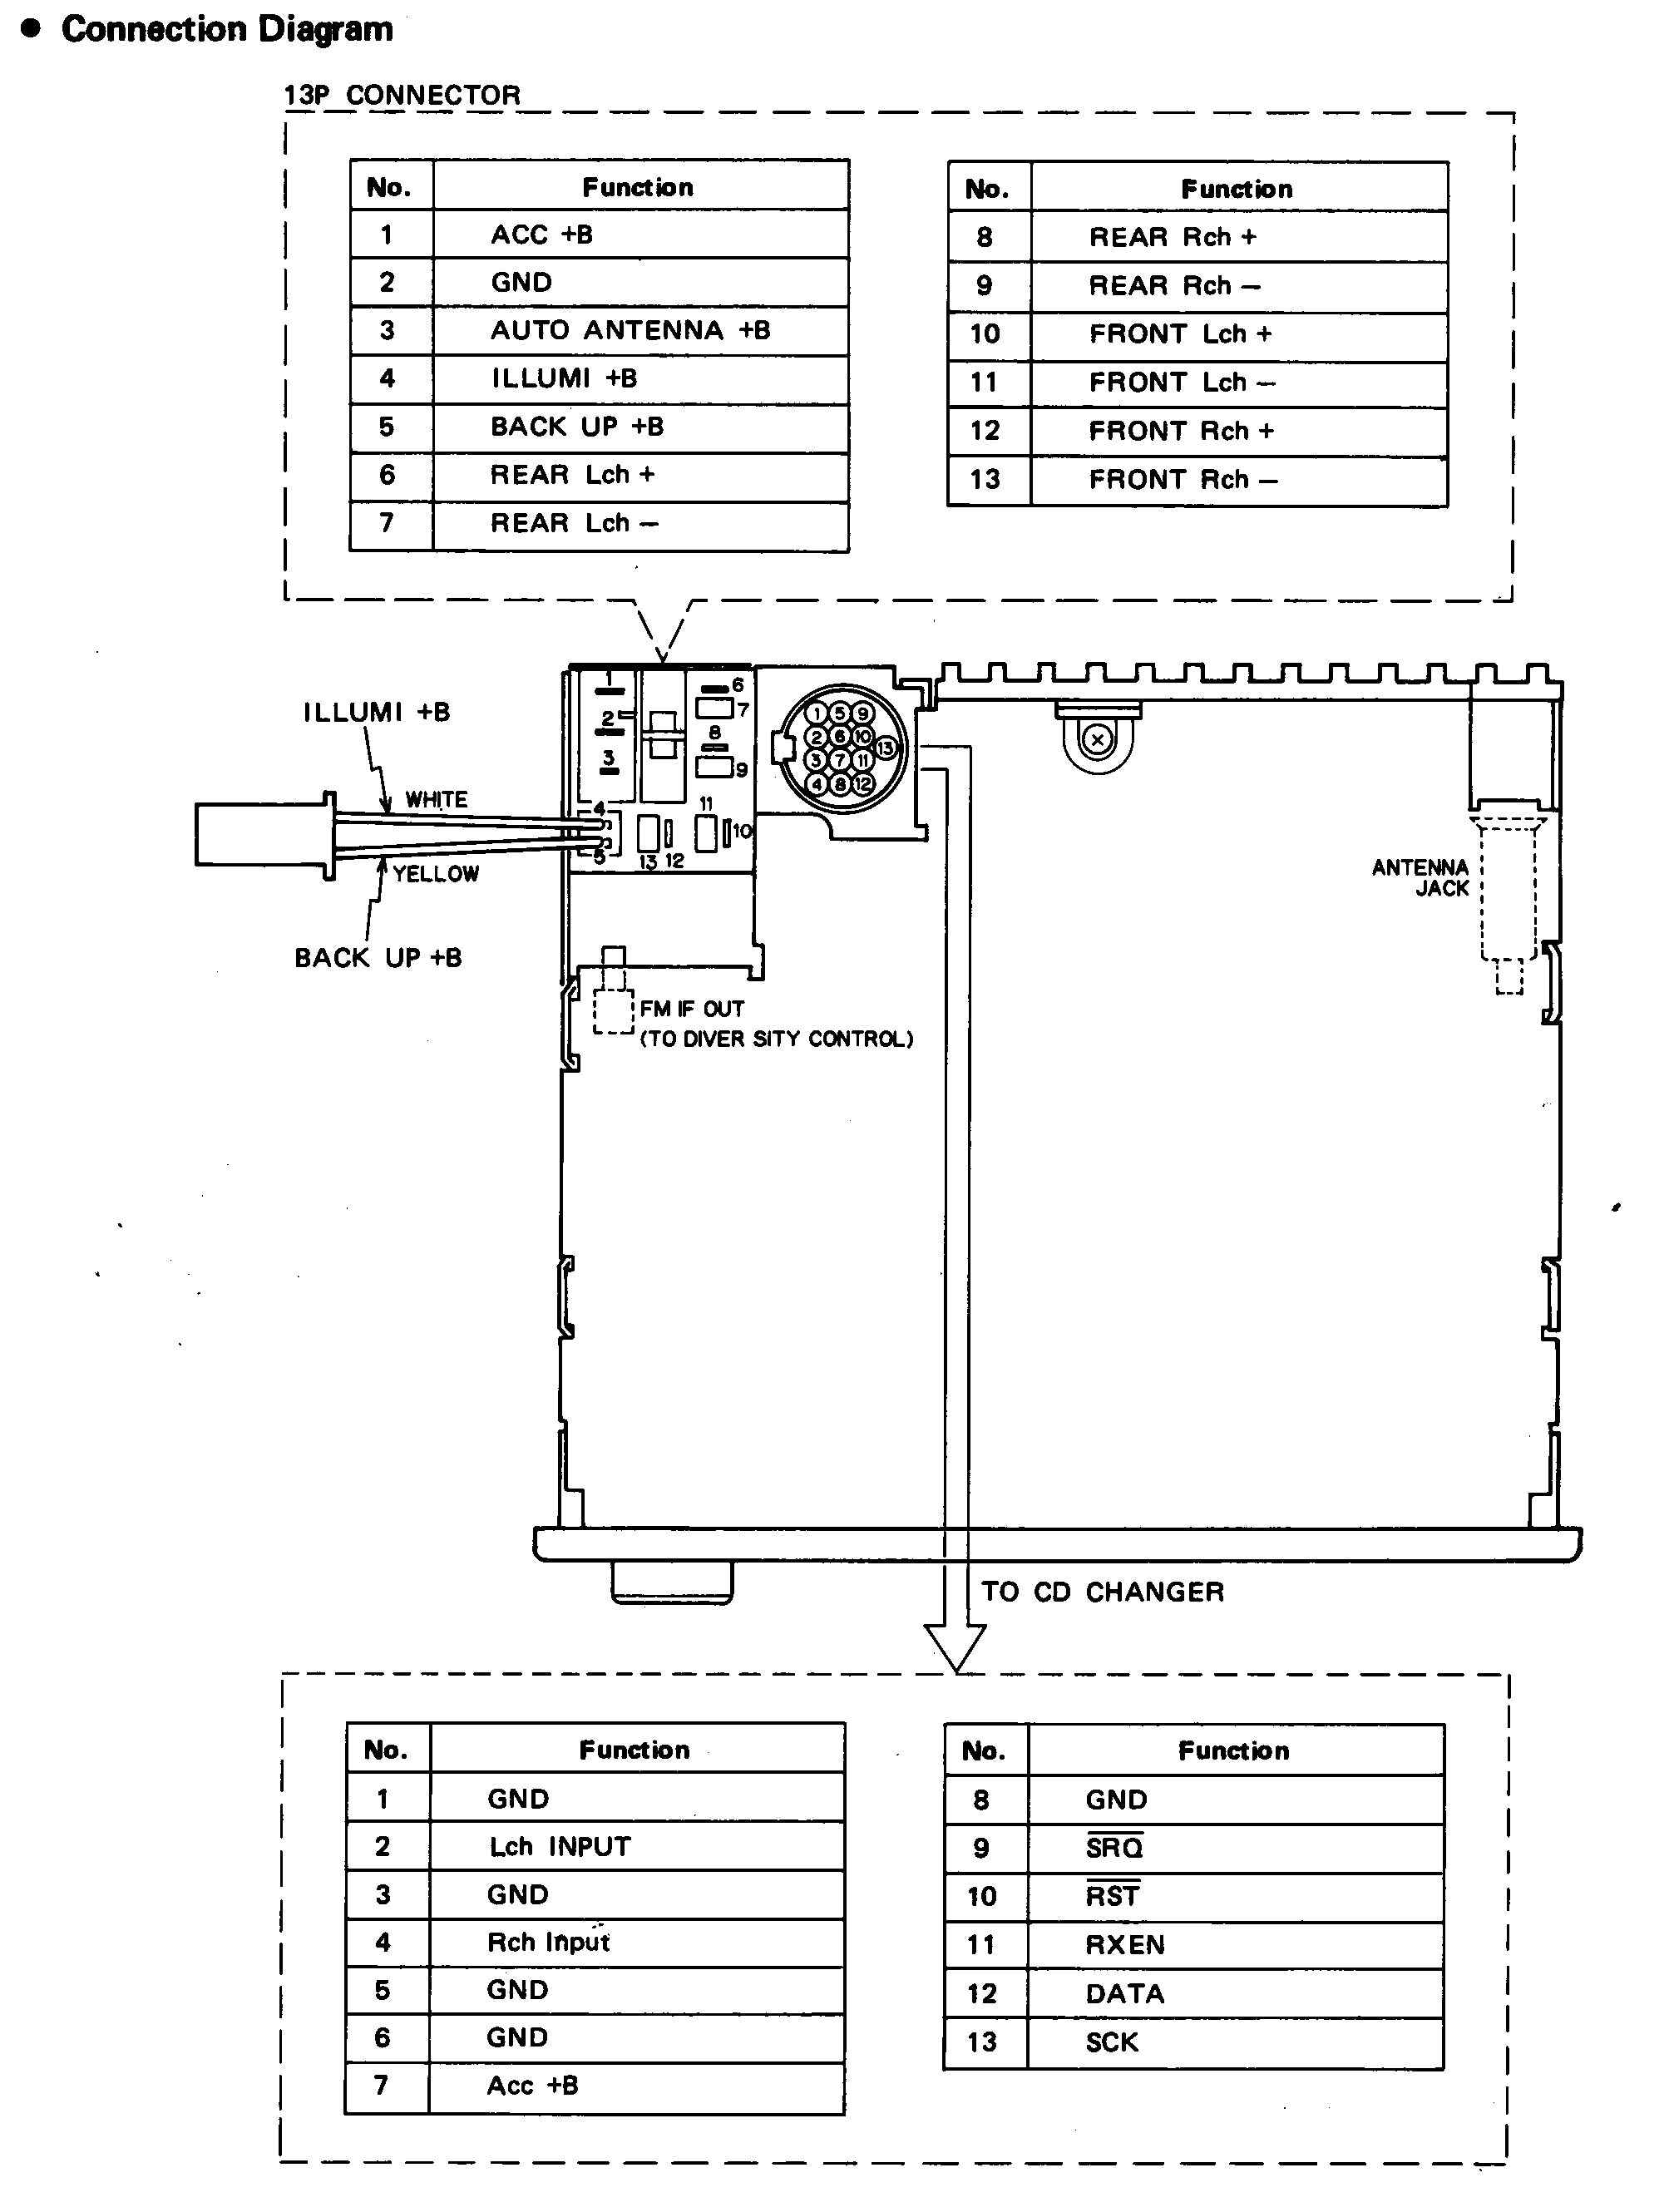 WireHarnessBMW121701 kenwood car radio wiring diagram wirdig readingrat net e46 speaker wiring diagram at arjmand.co